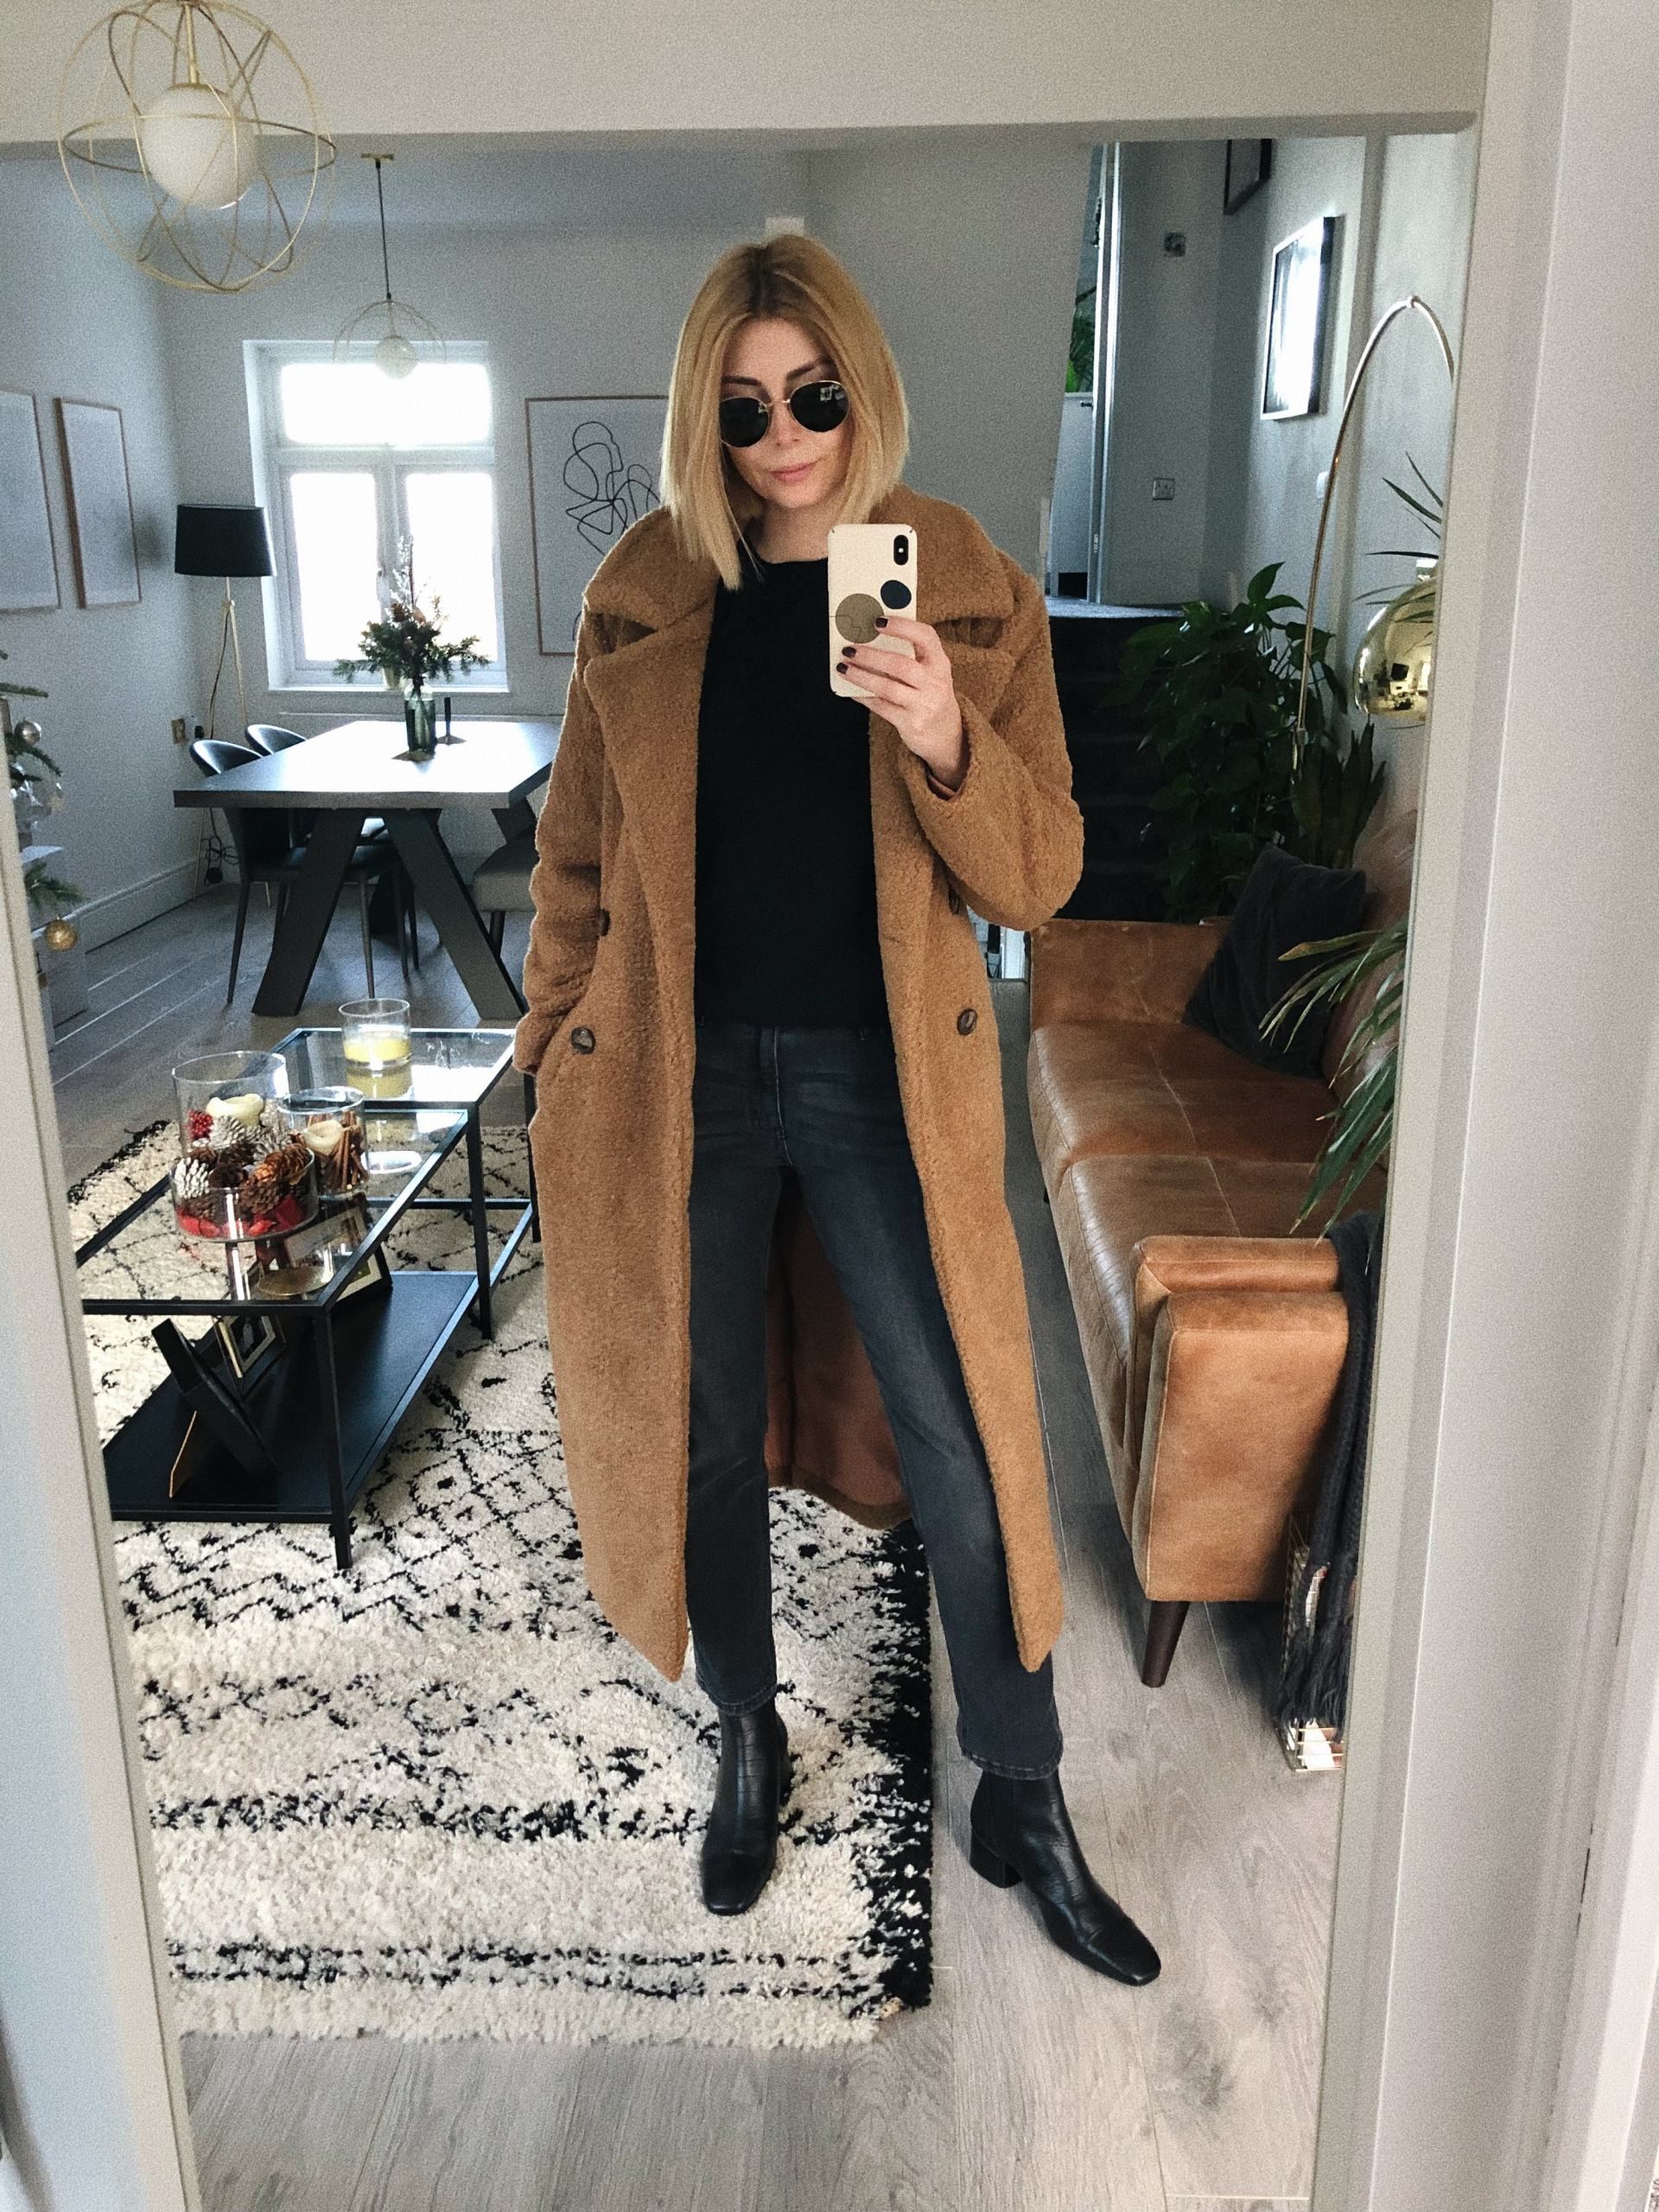 Emma Hill wears brown teddy coat, black jeans, black cashmere jumper, black ank;le boots, round sunglasses, chic casual winter outfit